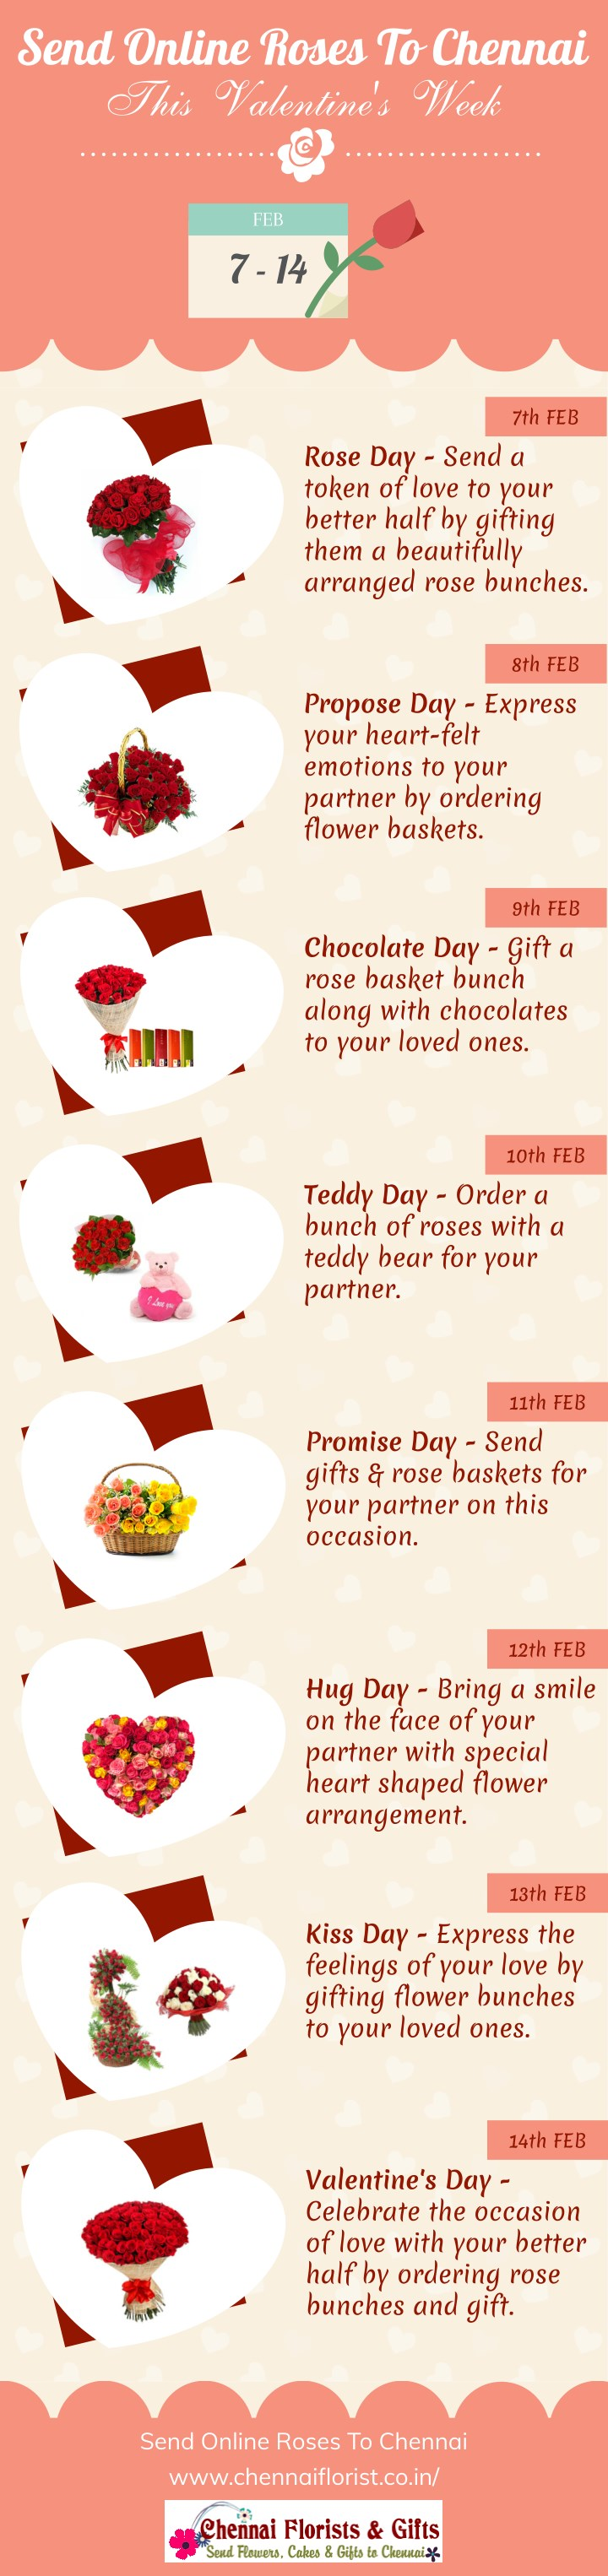 send online roses to chennai this valentine s week n.